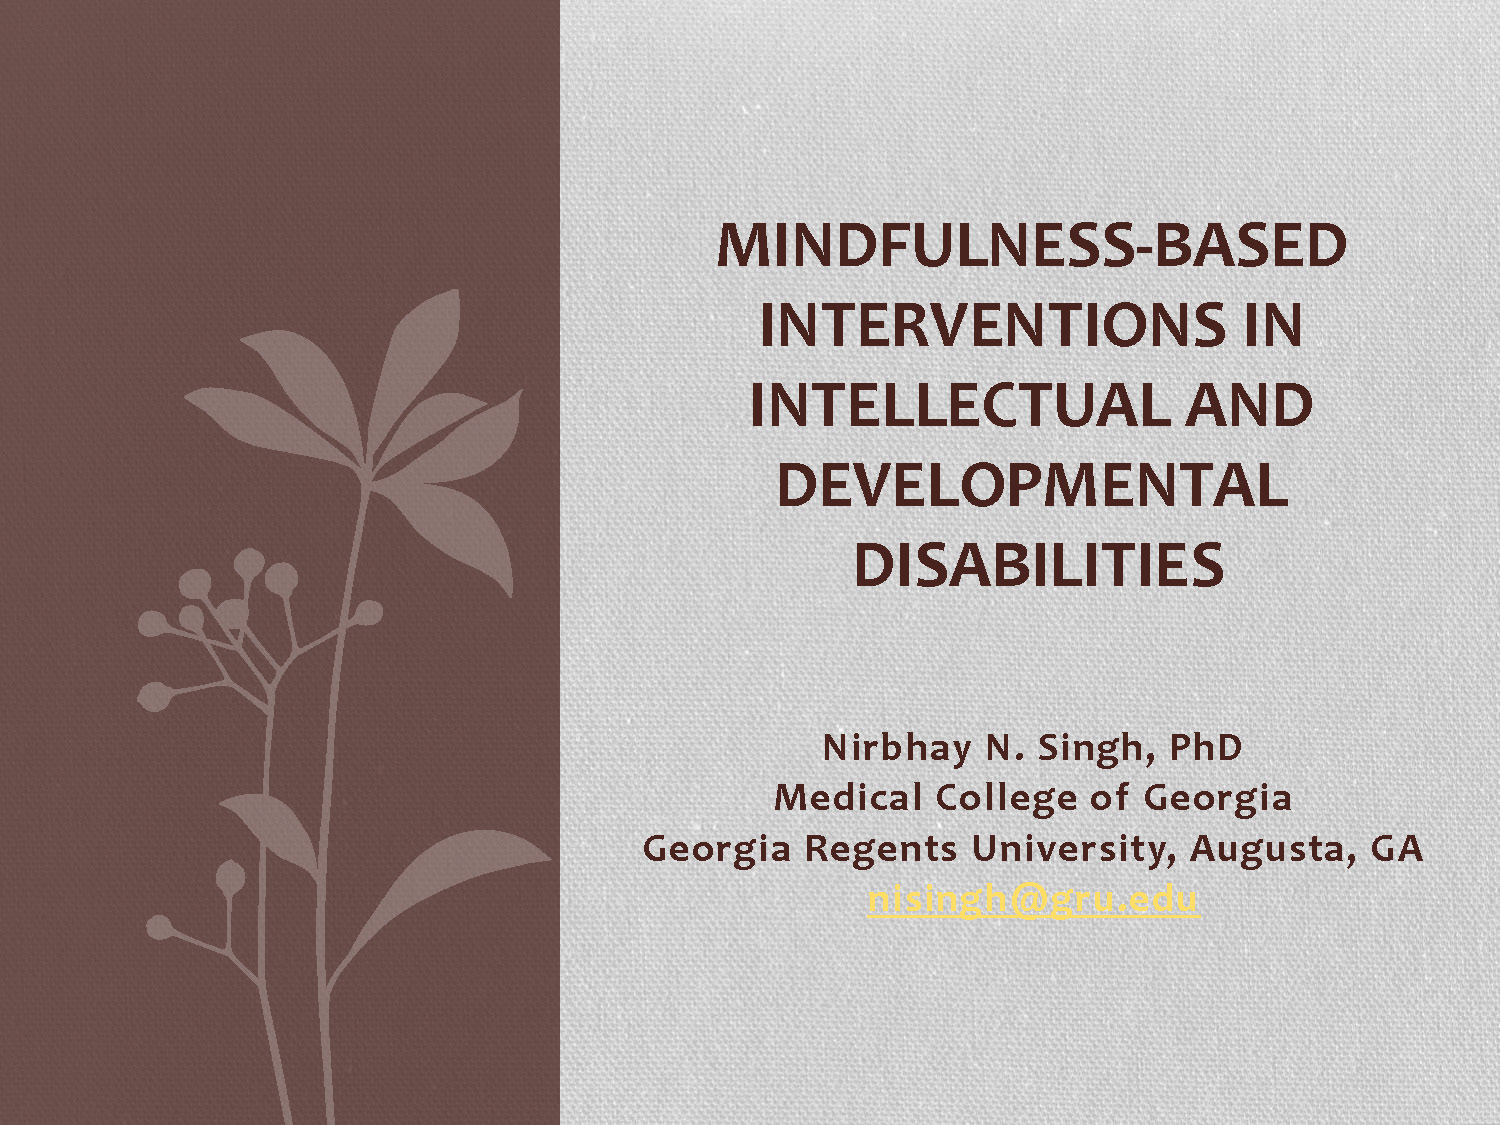 Pages from SY23.2 MINDFULNESS-BASED INTERVENTIONS IN INTELLECTUAL AND DEVELOPMENTAL DISABILITIES_Singh